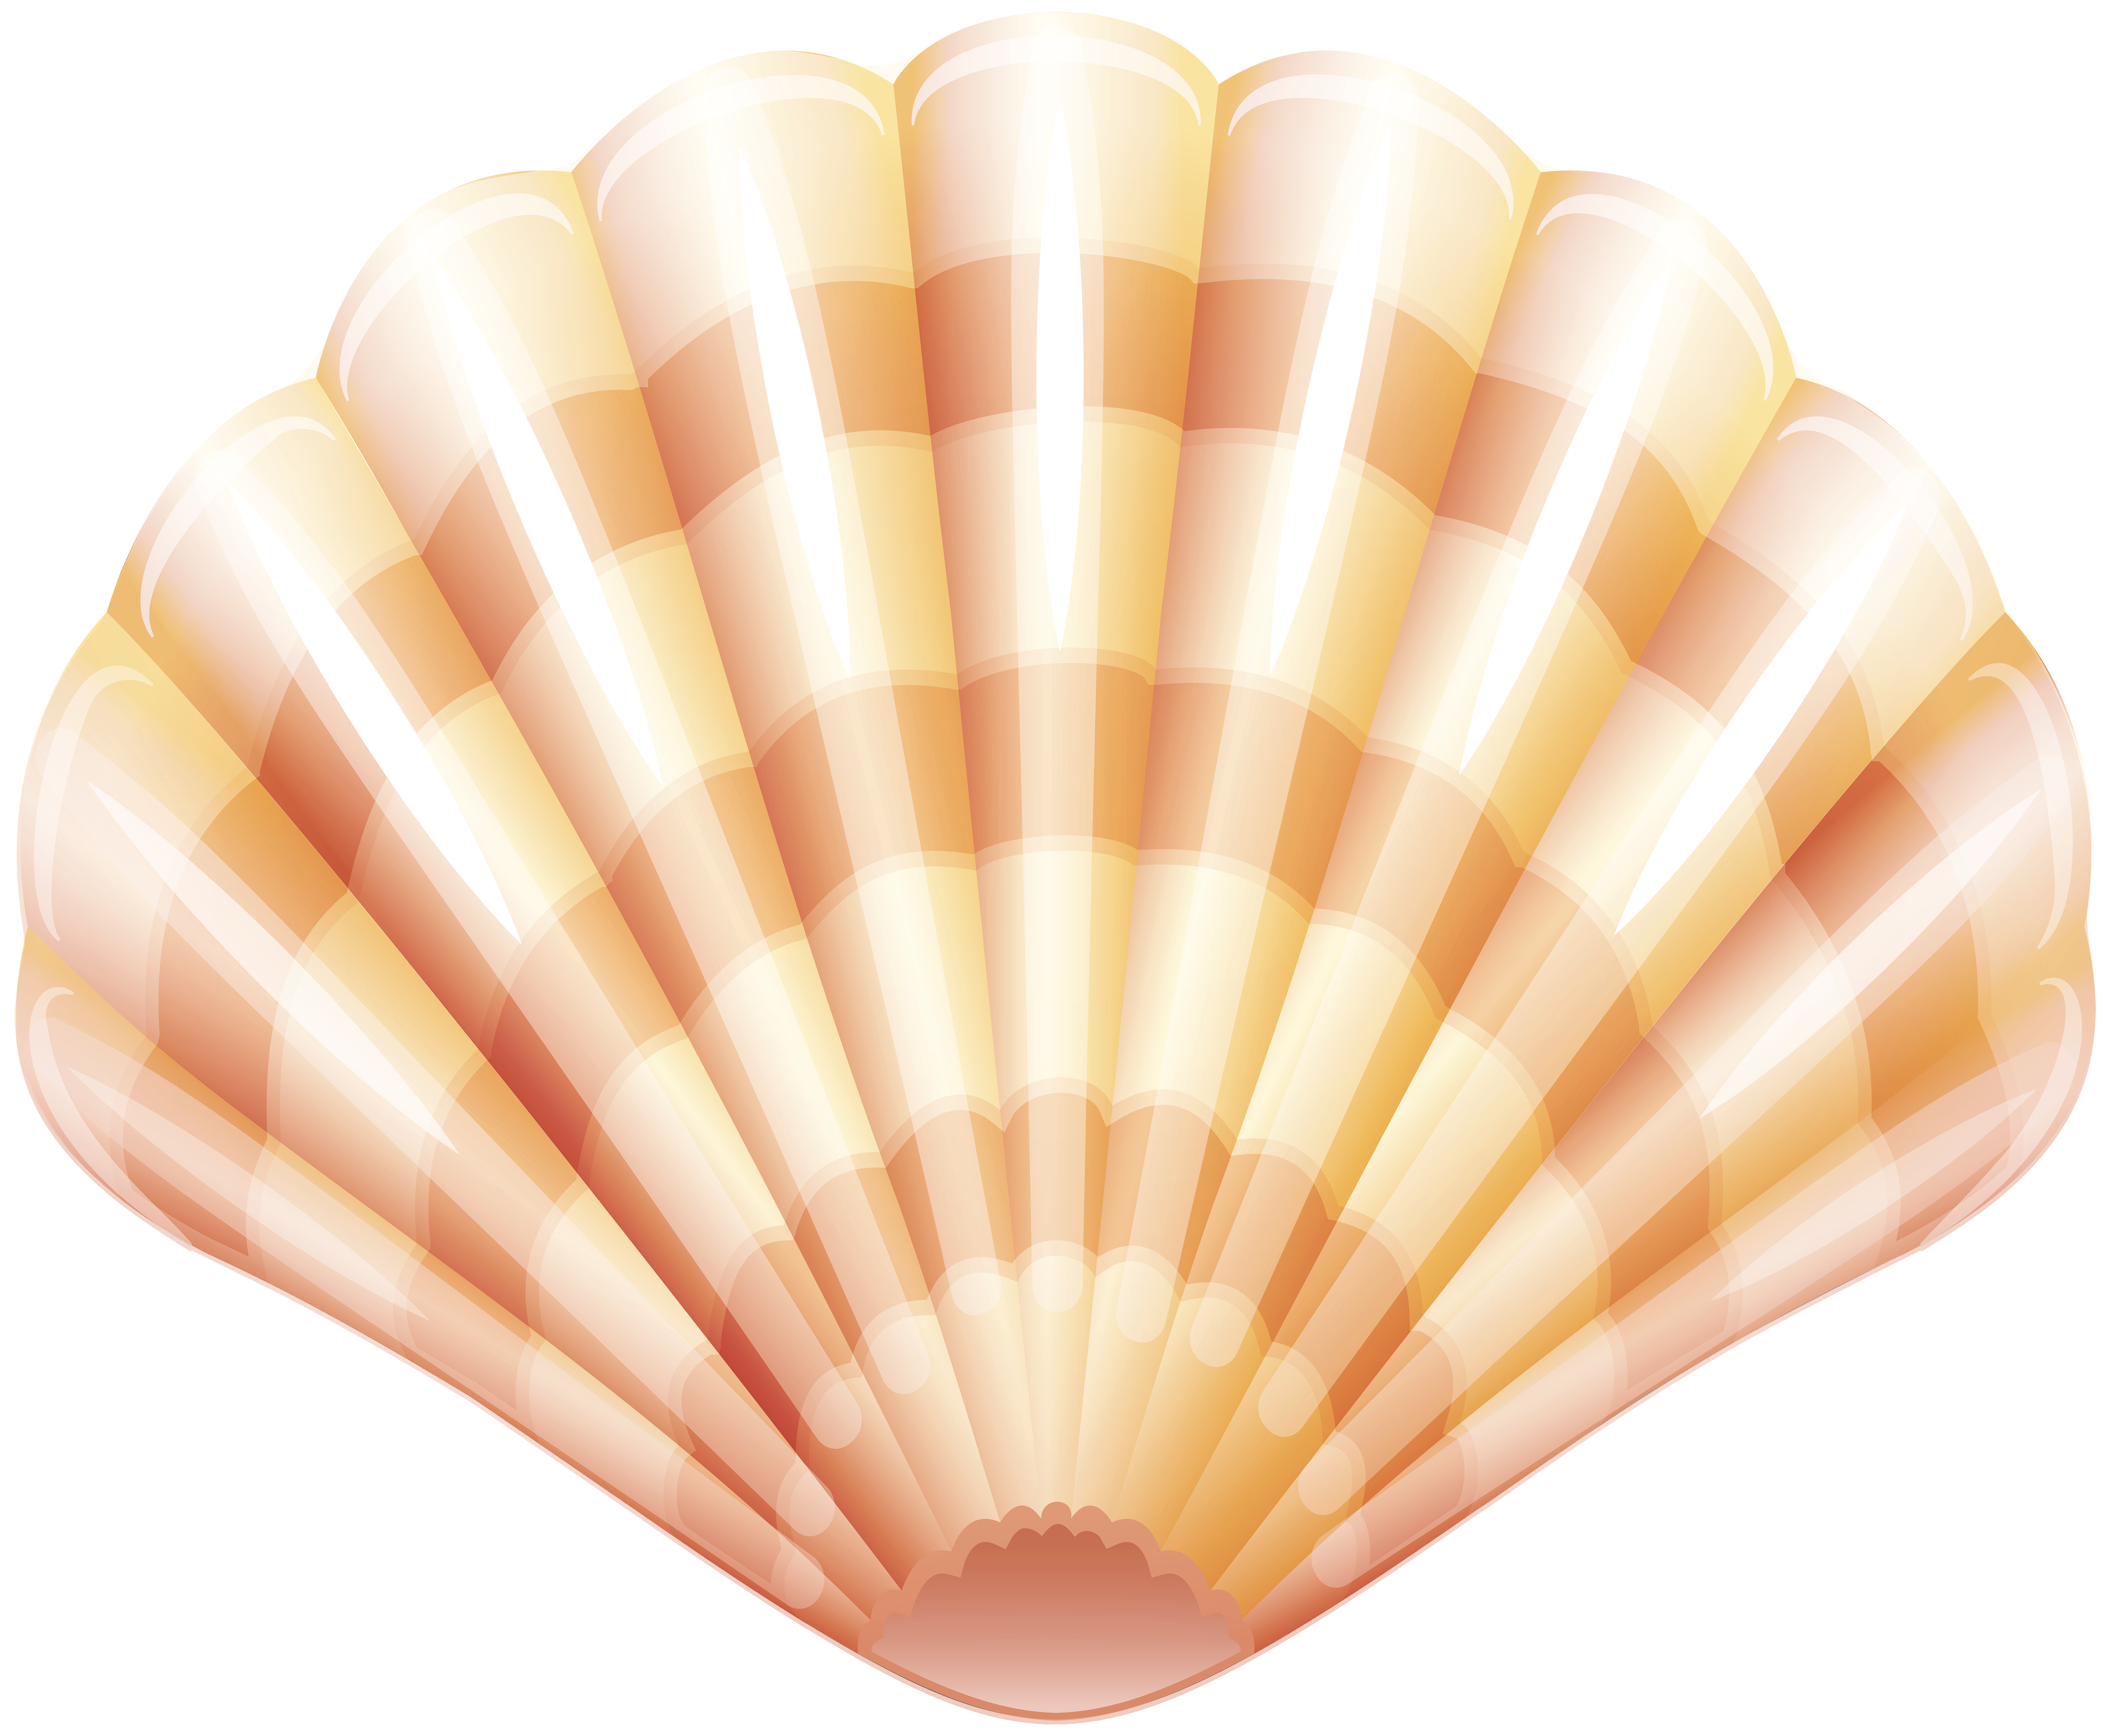 Sea clam shell png. Goat clipart parliamentary procedure